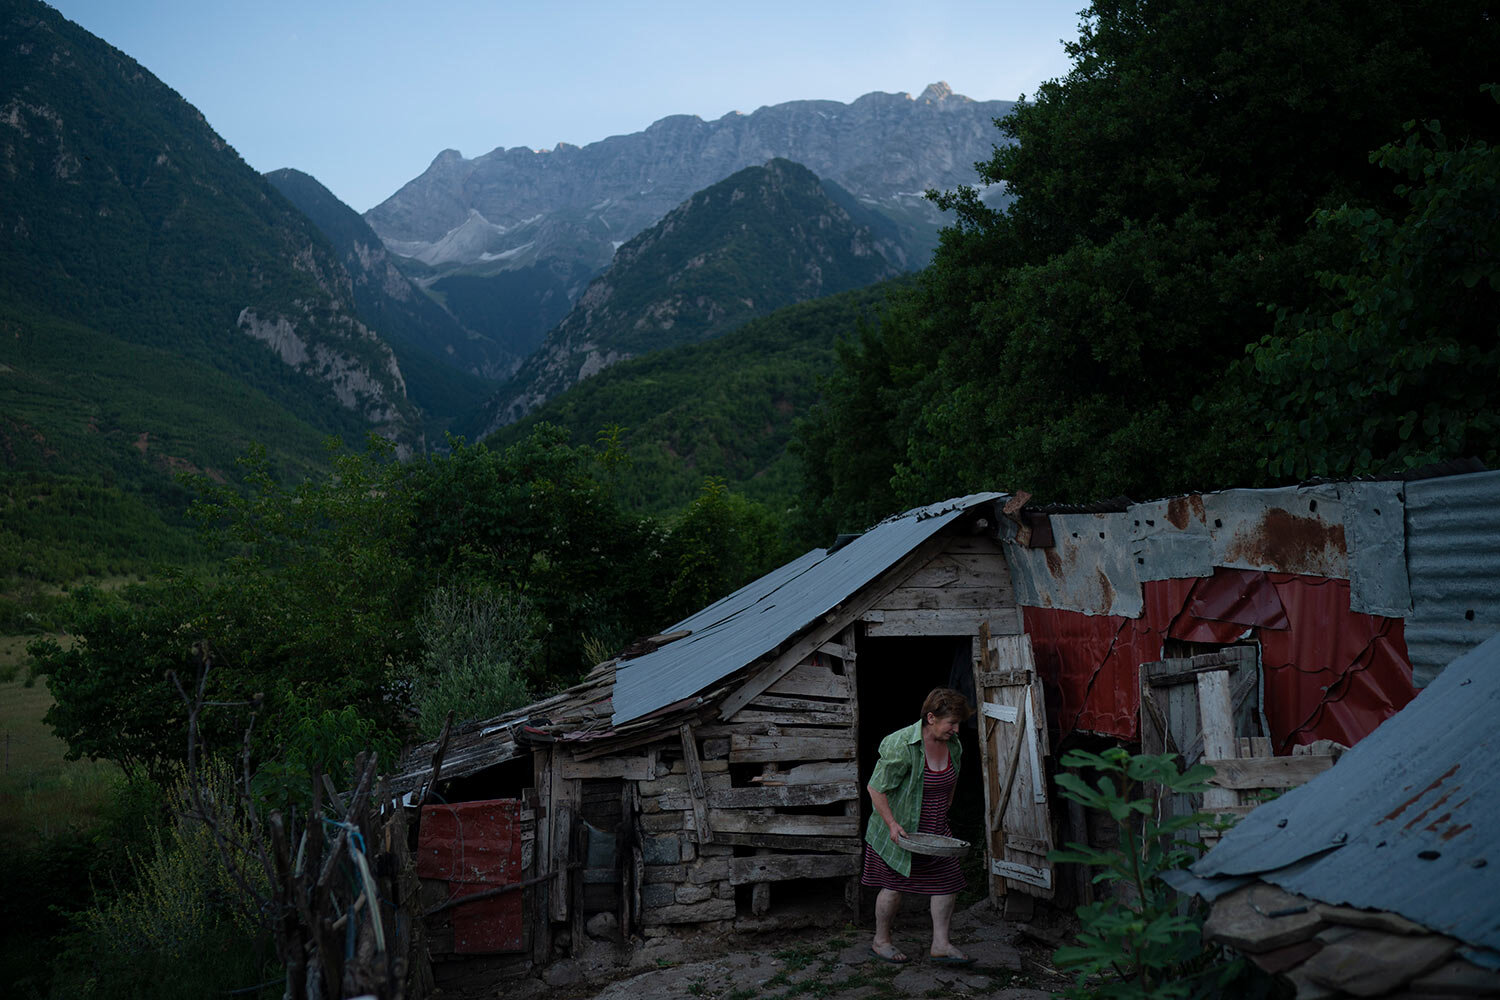 Vito Ilia, 64, walks out of a small cow shed outside her home in the village of Kanikol, Albania. (AP Photo/Felipe Dana)